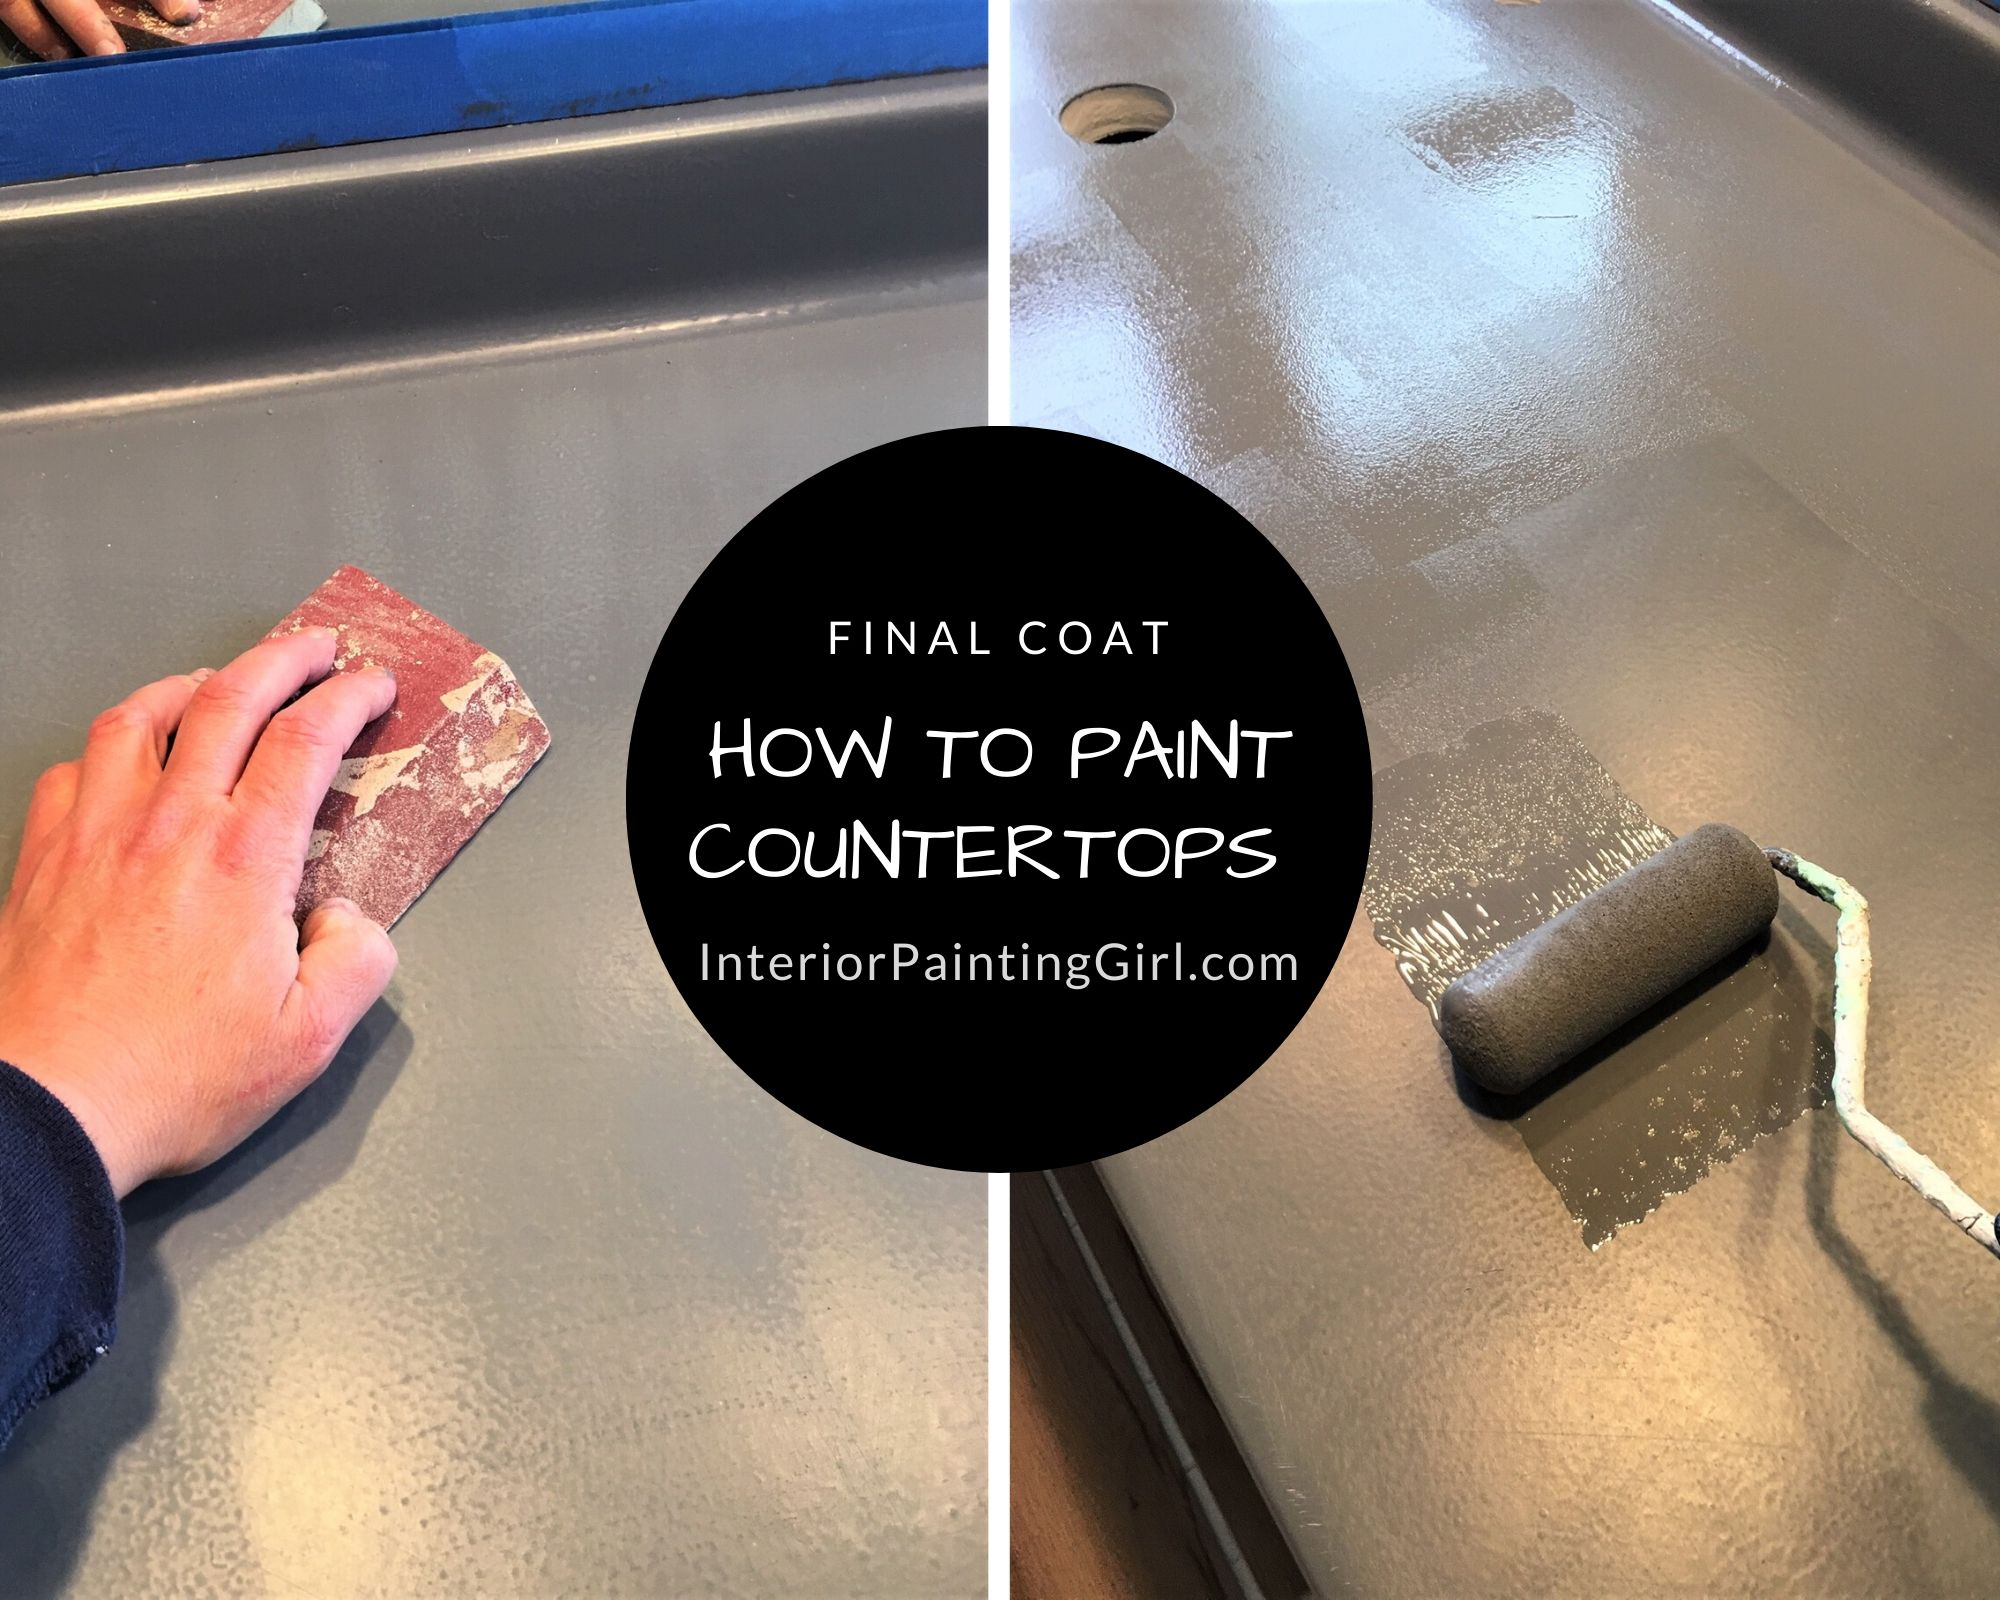 How To Paint Countertops - A Step-by-Step Guide from That Interior Painting Girl!